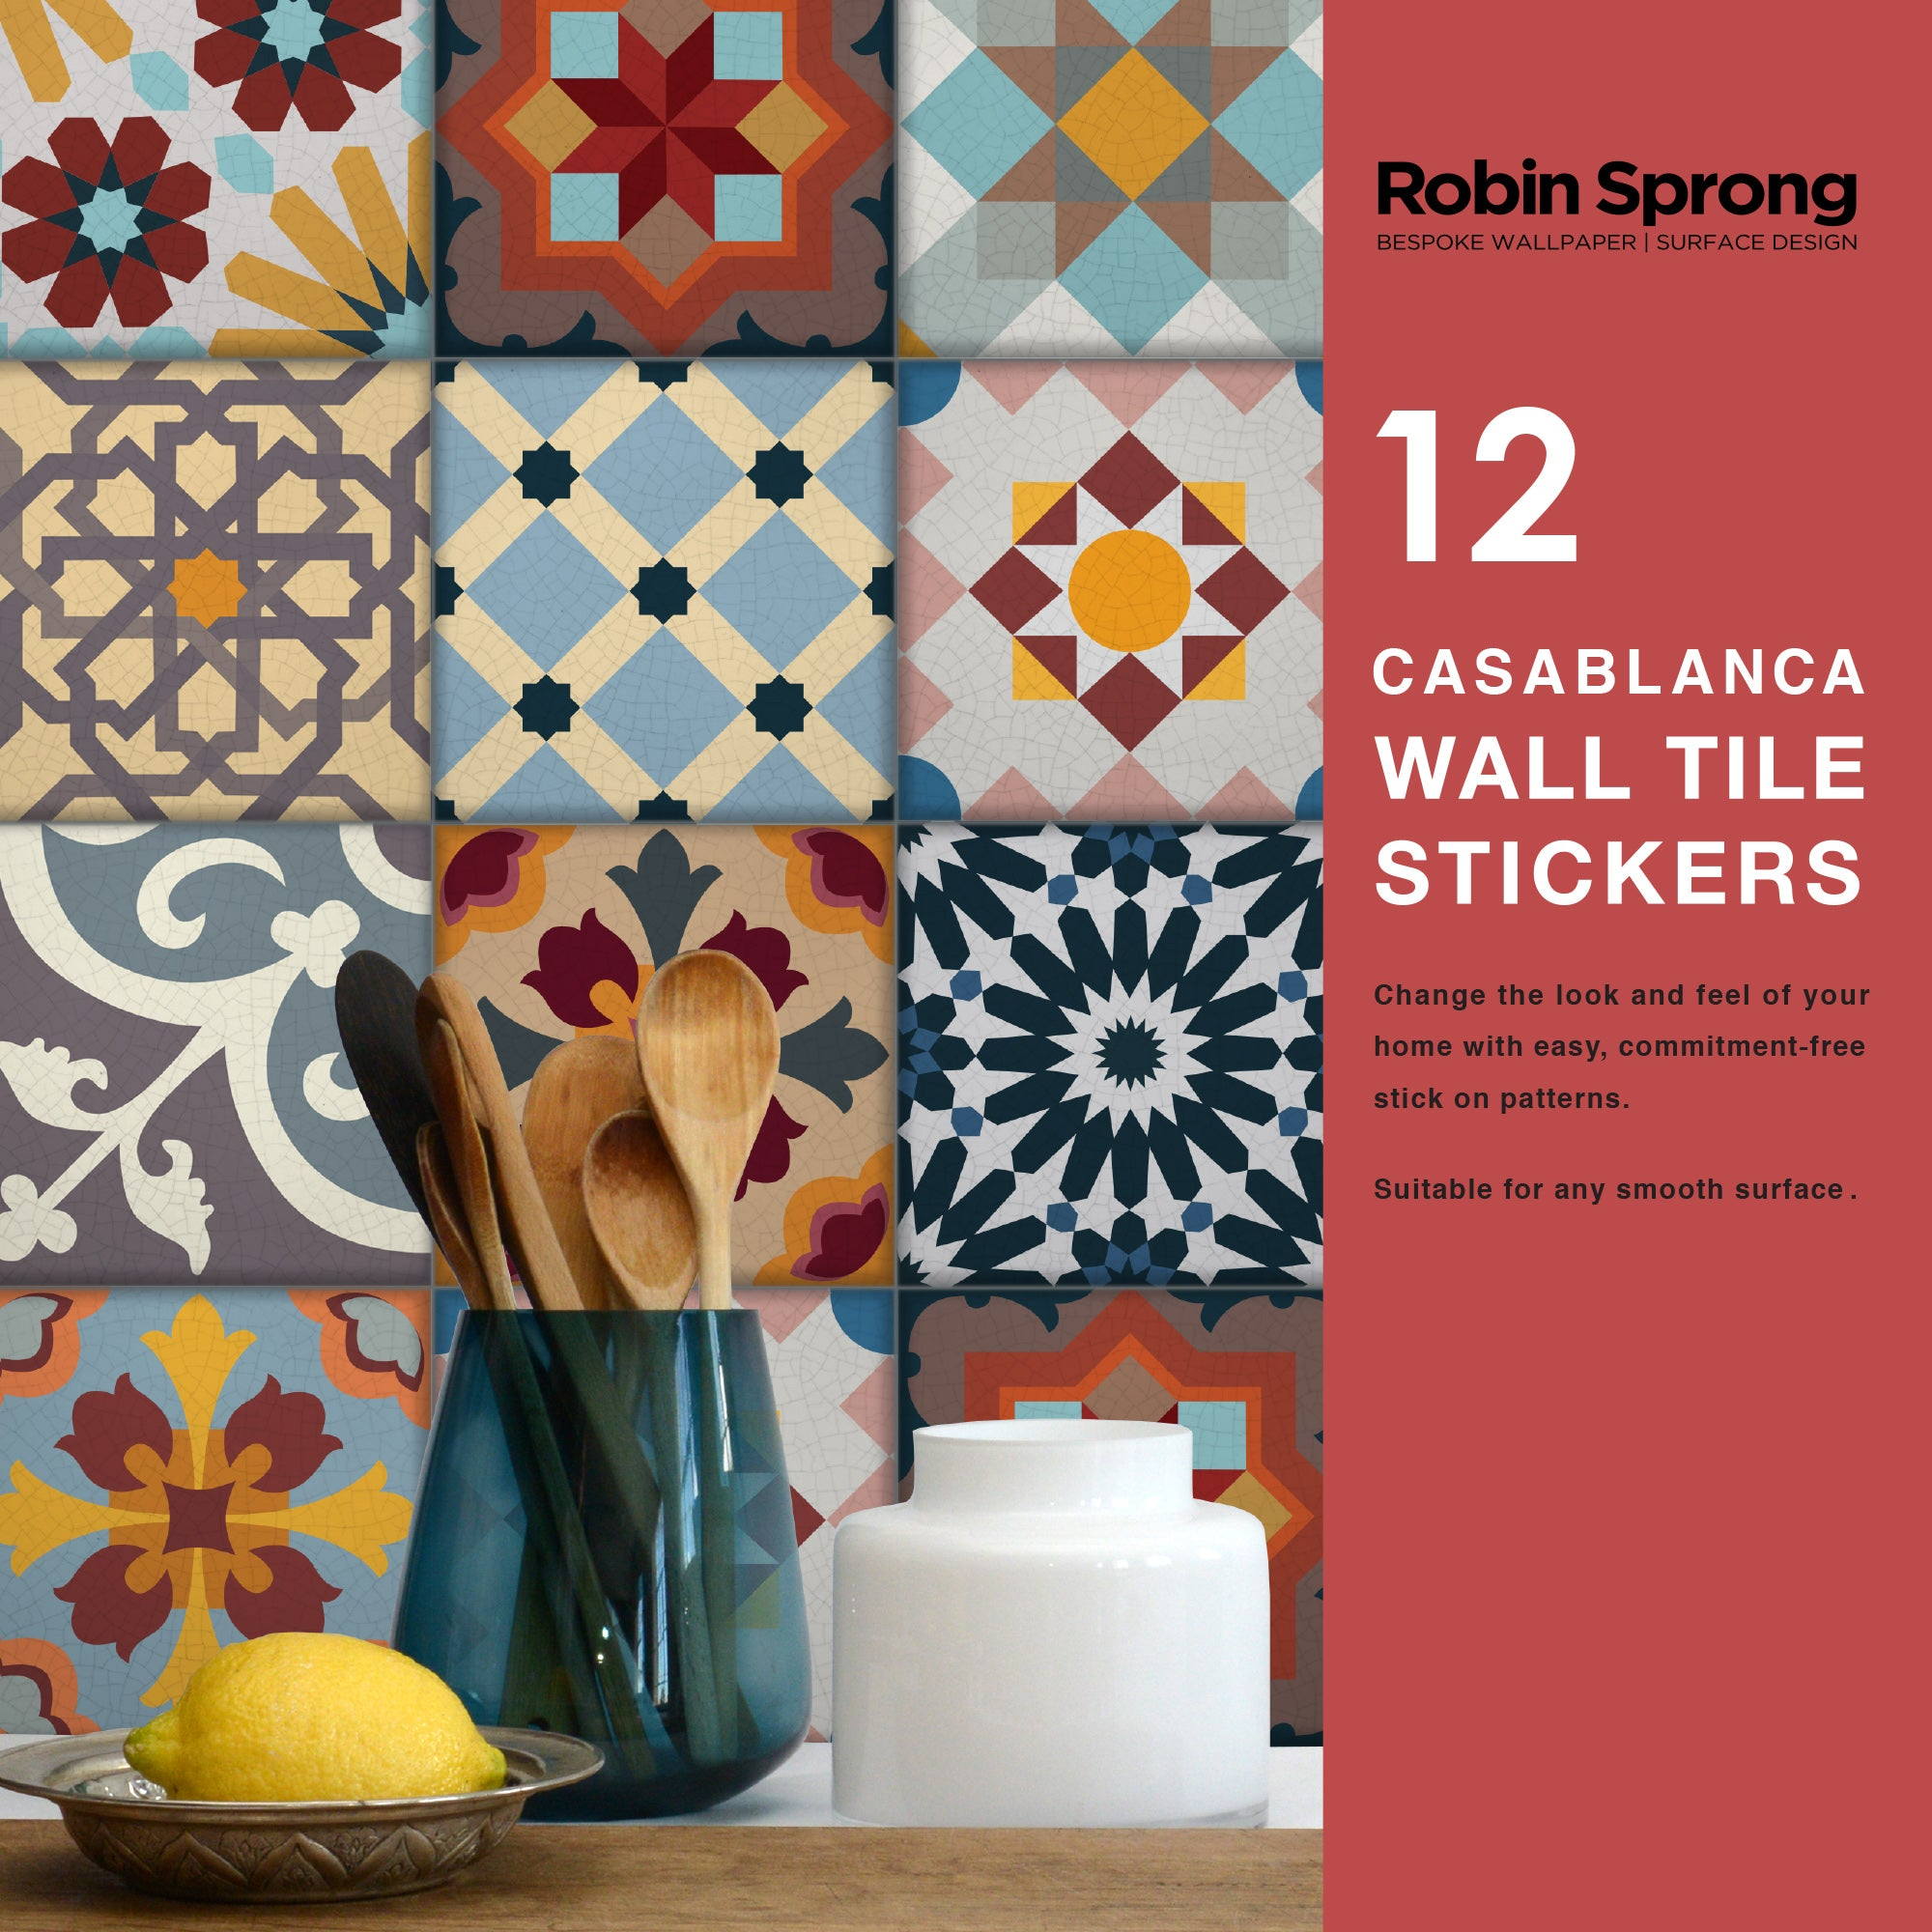 Wall Tile Stickers Casablanca 20x20cm